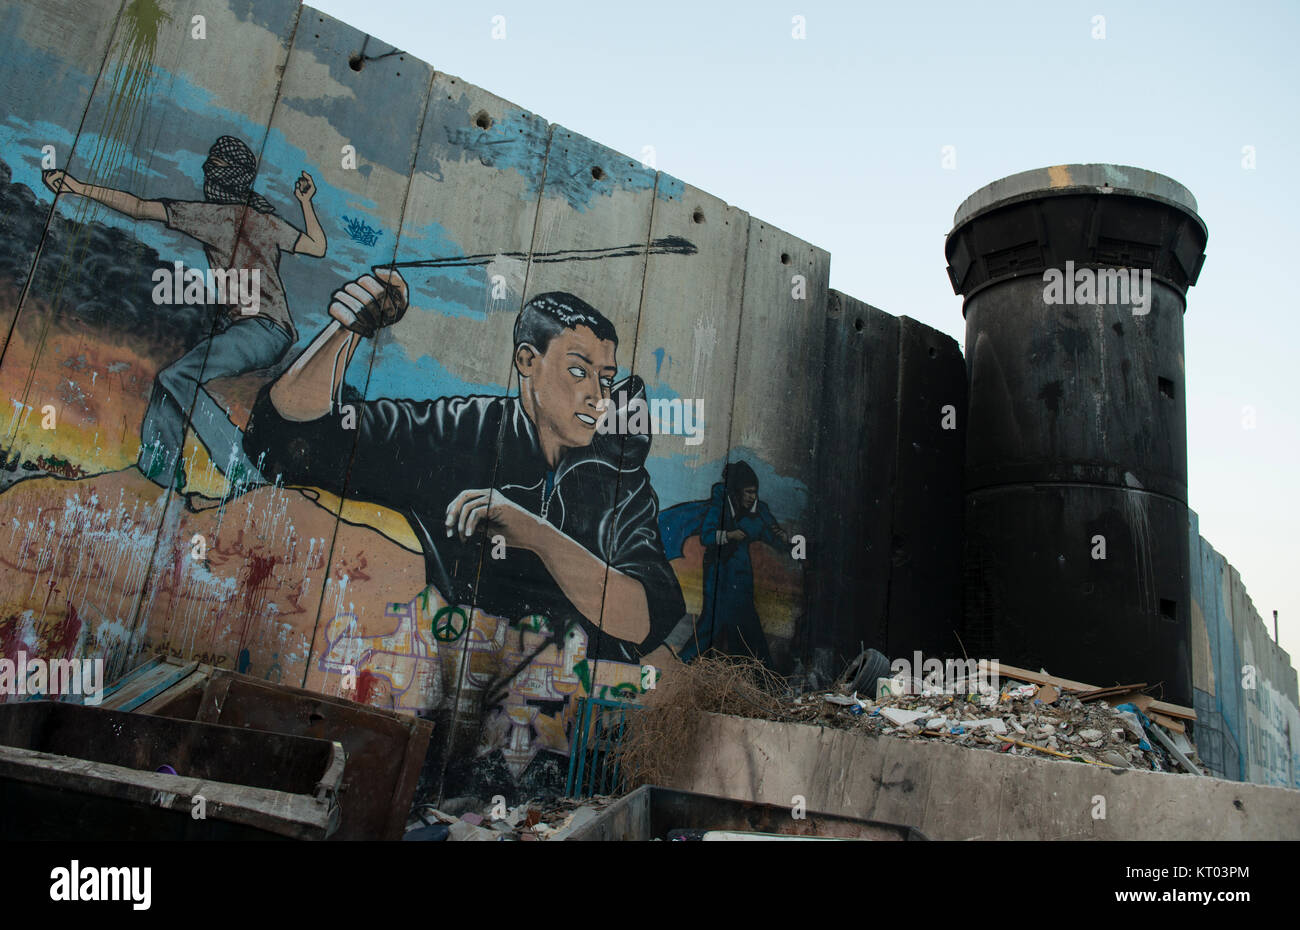 Burnt out watch tower on the West Bank Wall in the State of Palestine - Stock Image